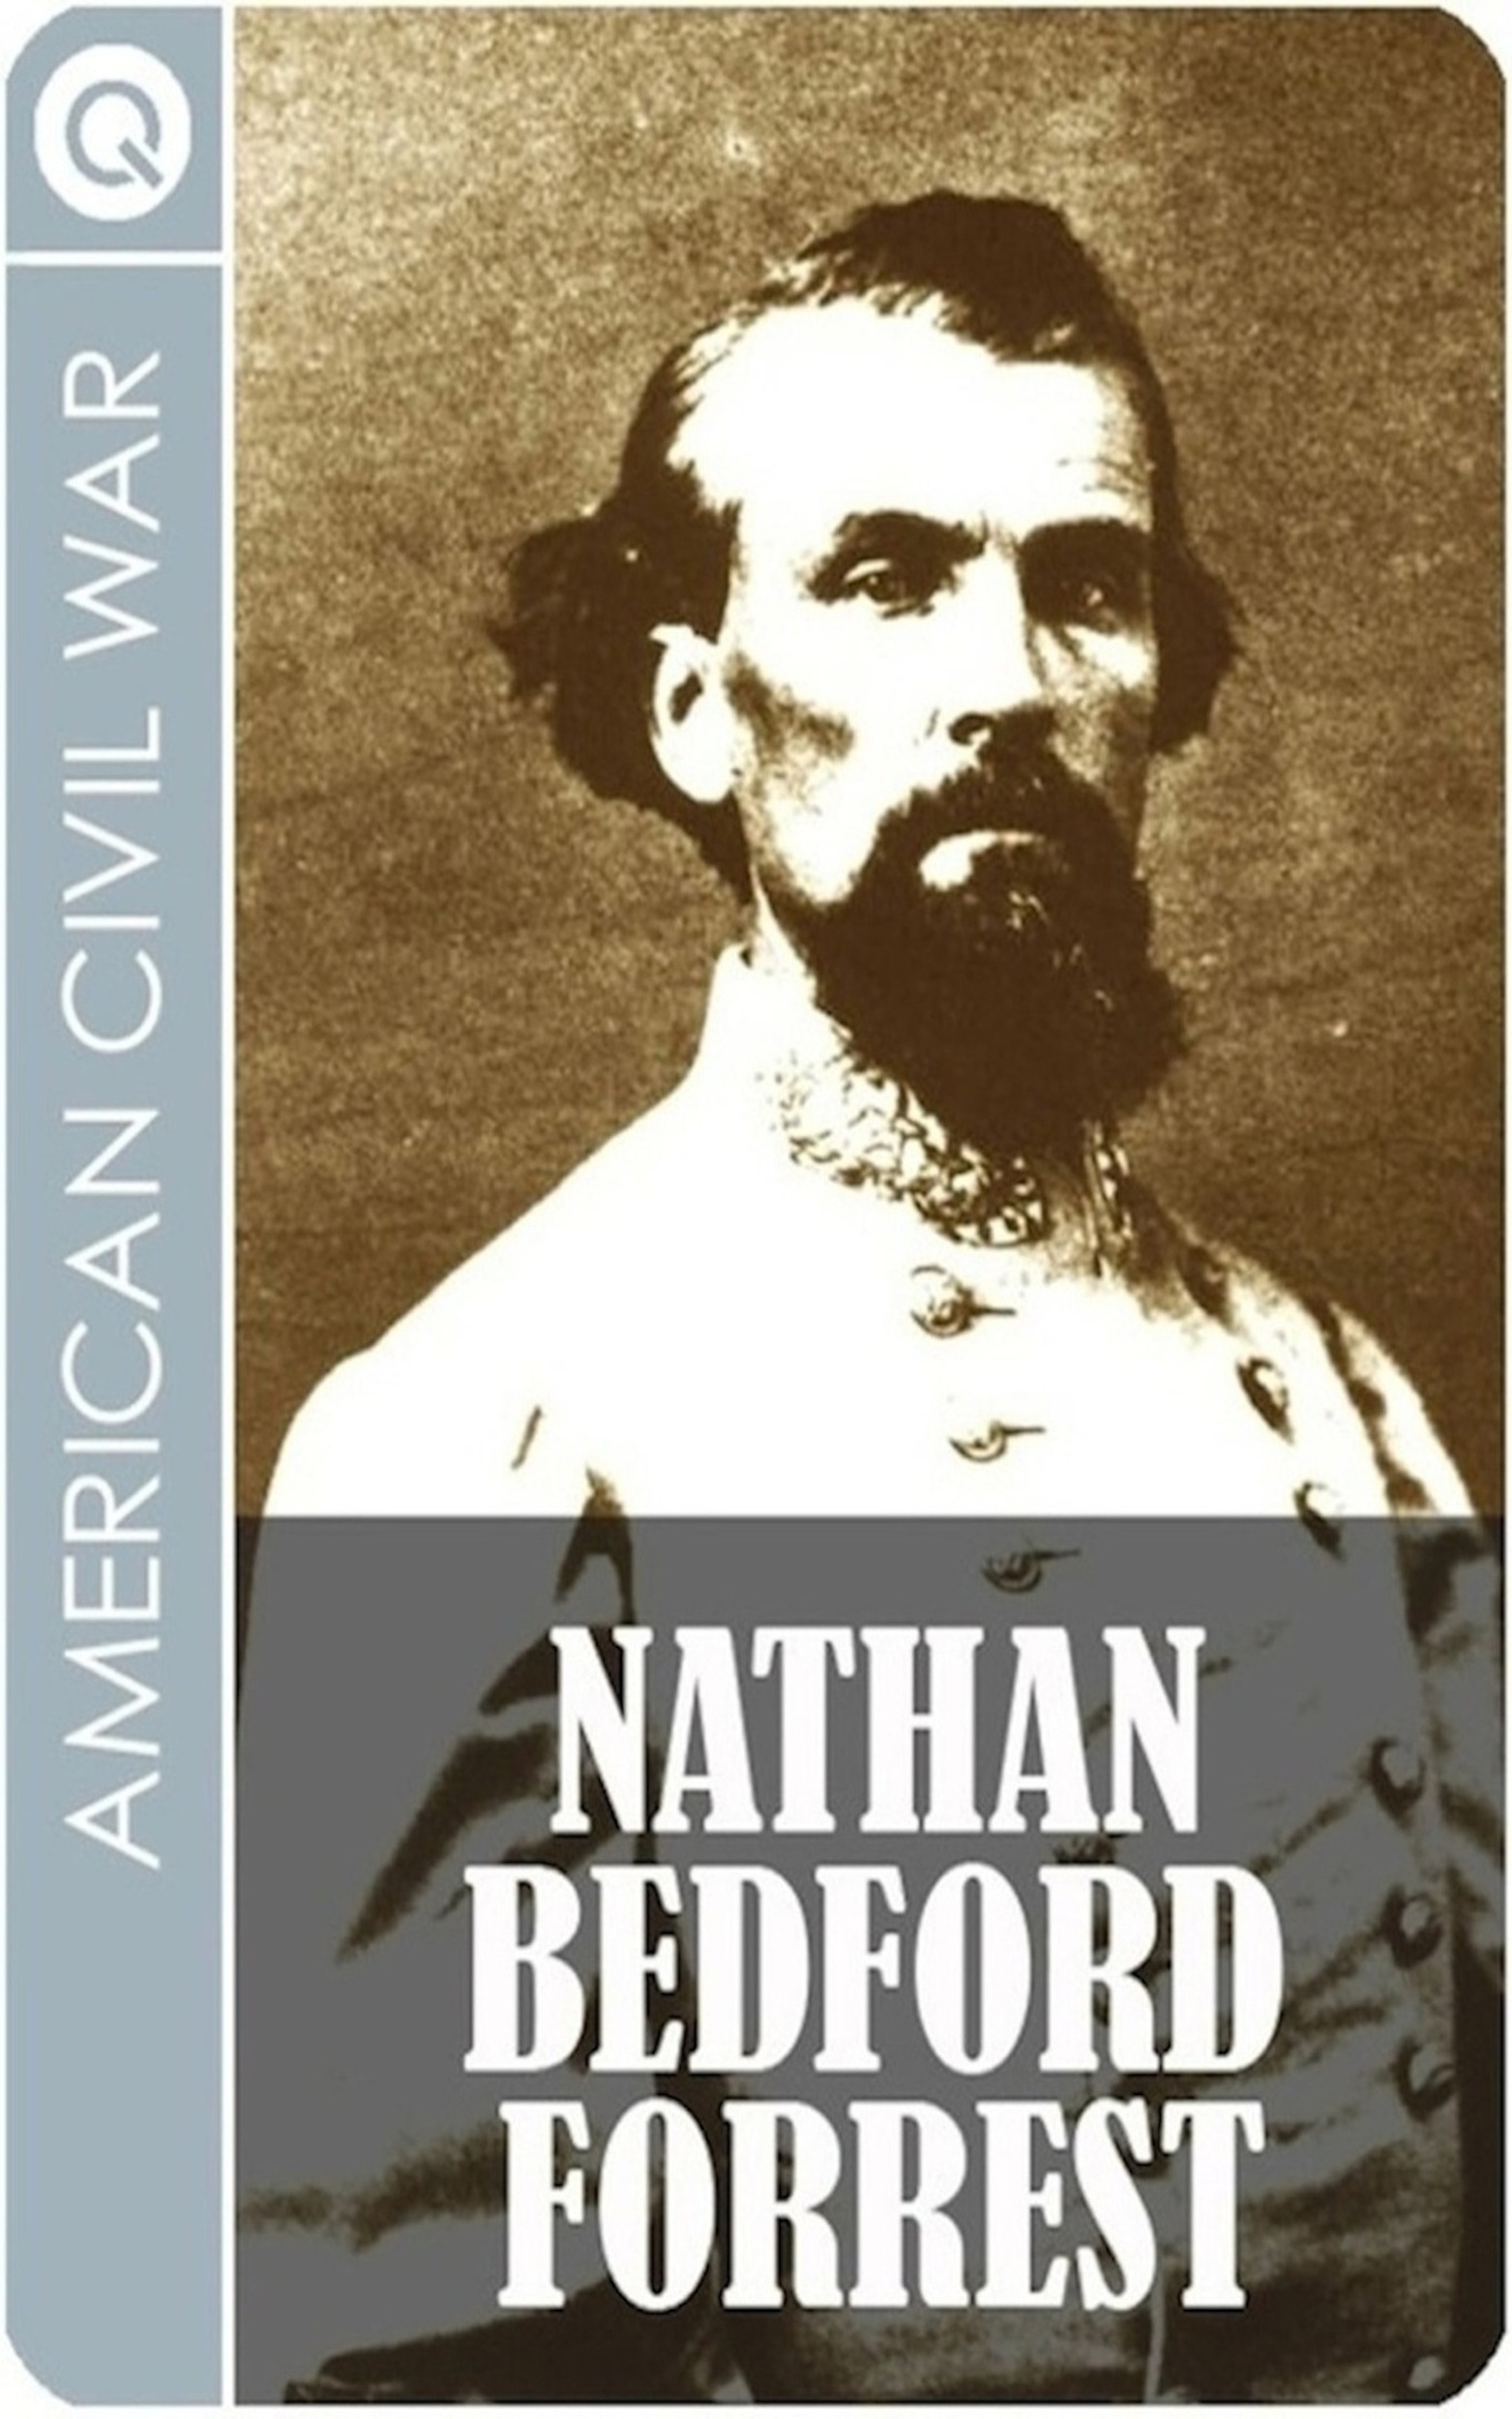 a biography of nathan bedford forrest Think that if he were alive today, general nathan bedford forrest would embrace dylann roof, the alleged killer of nine blacks in a charleston church who.